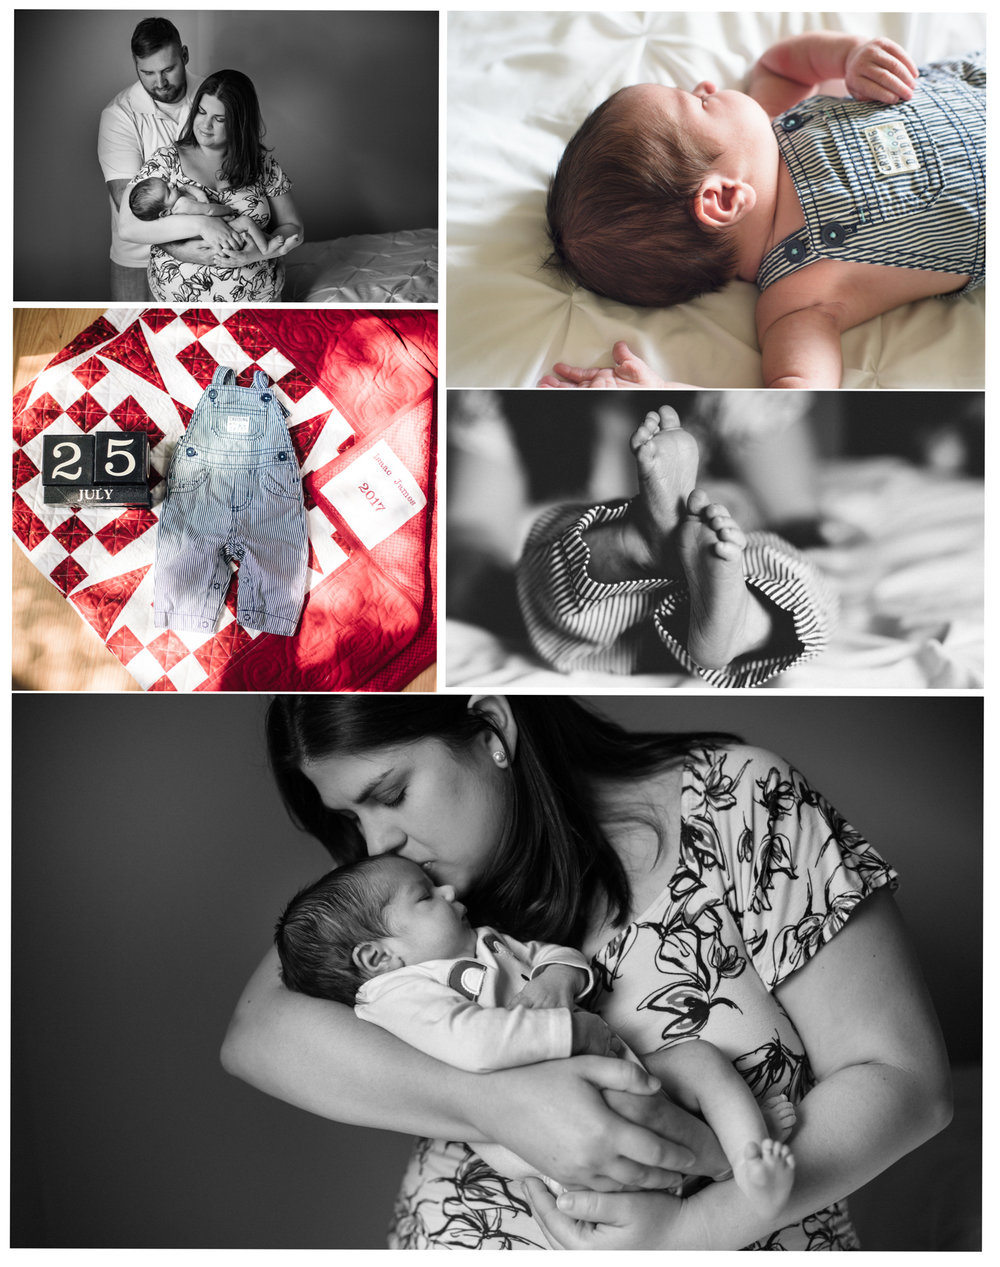 """We love our photos of Isaac, thank you so very much for coming into our home and capturing these precious moments, I will treasure these photos forever!"" Rebecca"